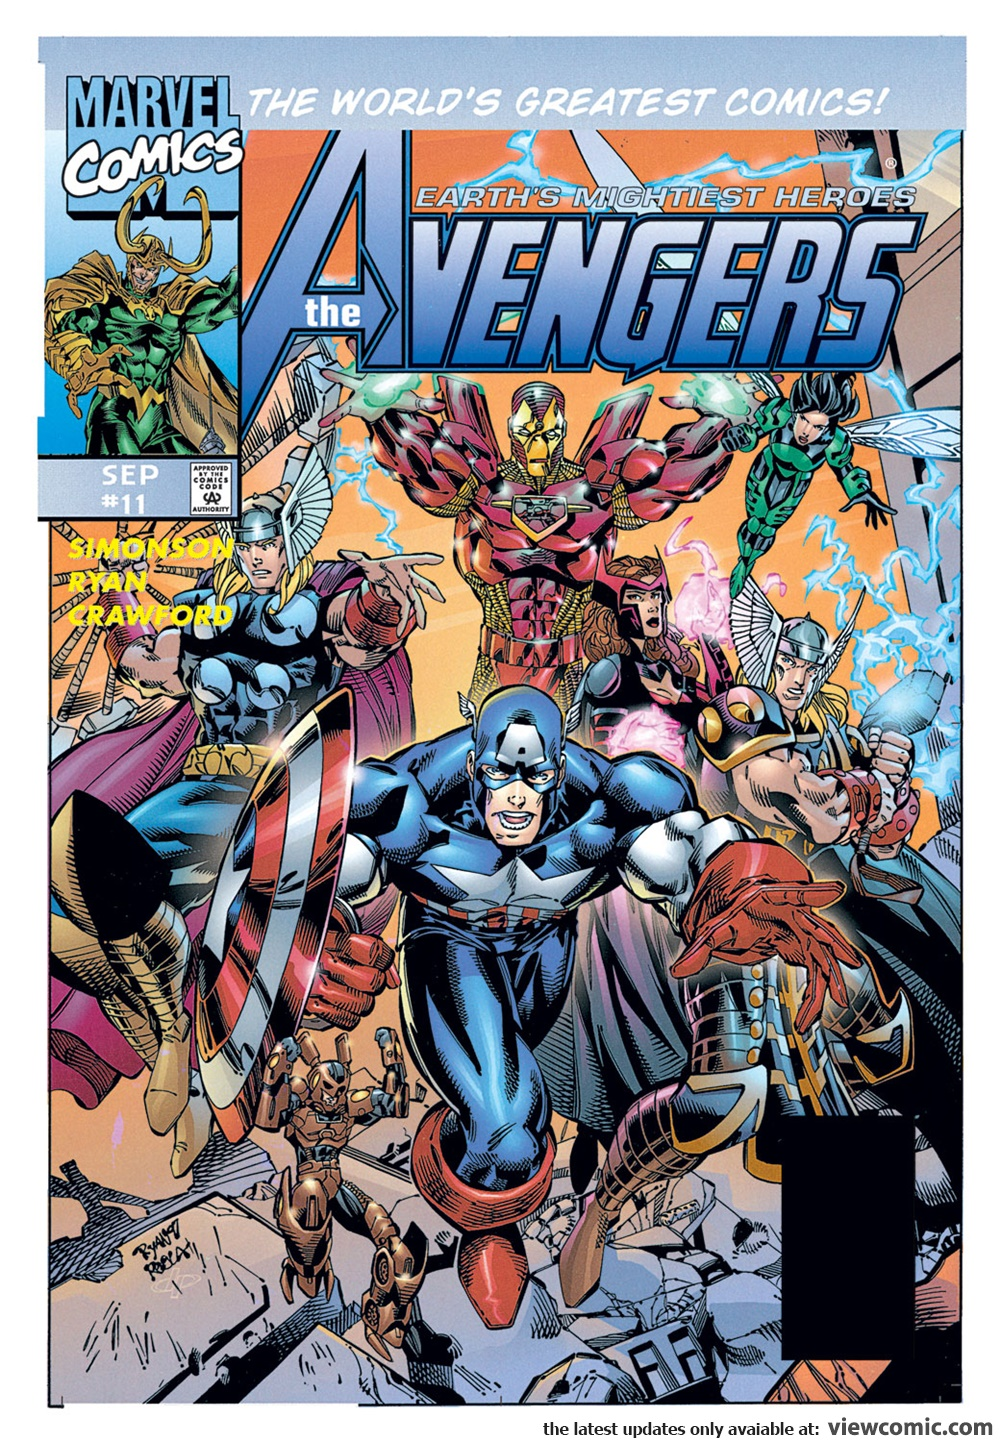 Avengers v2 011 (1997) | Vietcomic.net reading comics online for free